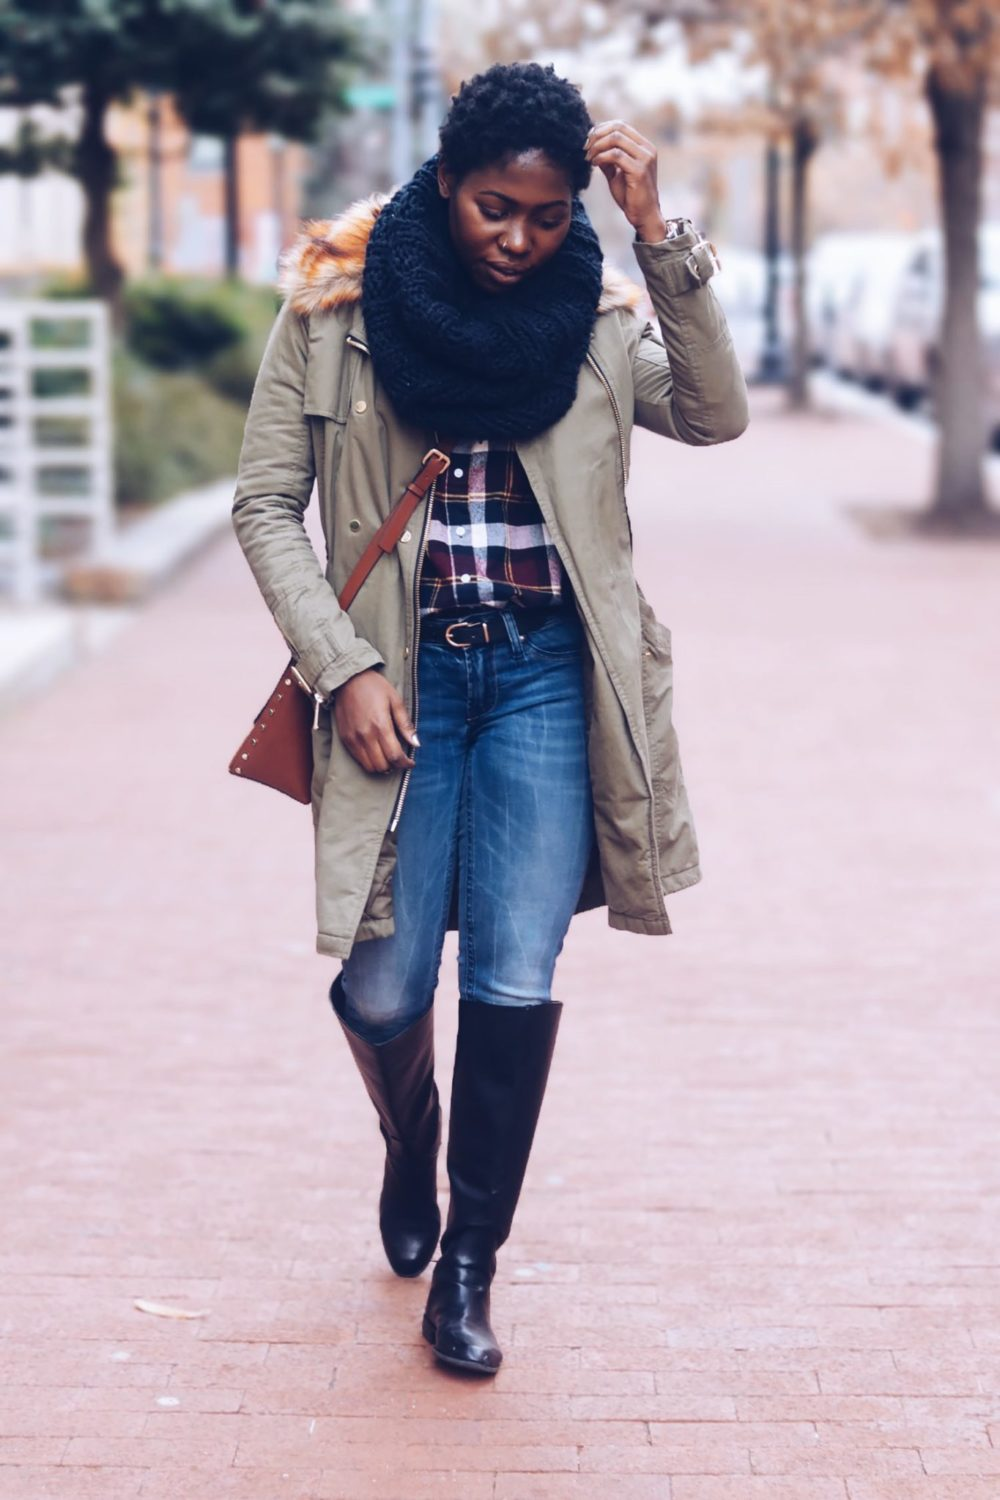 style-synopsis-winter-layered-look-ideas